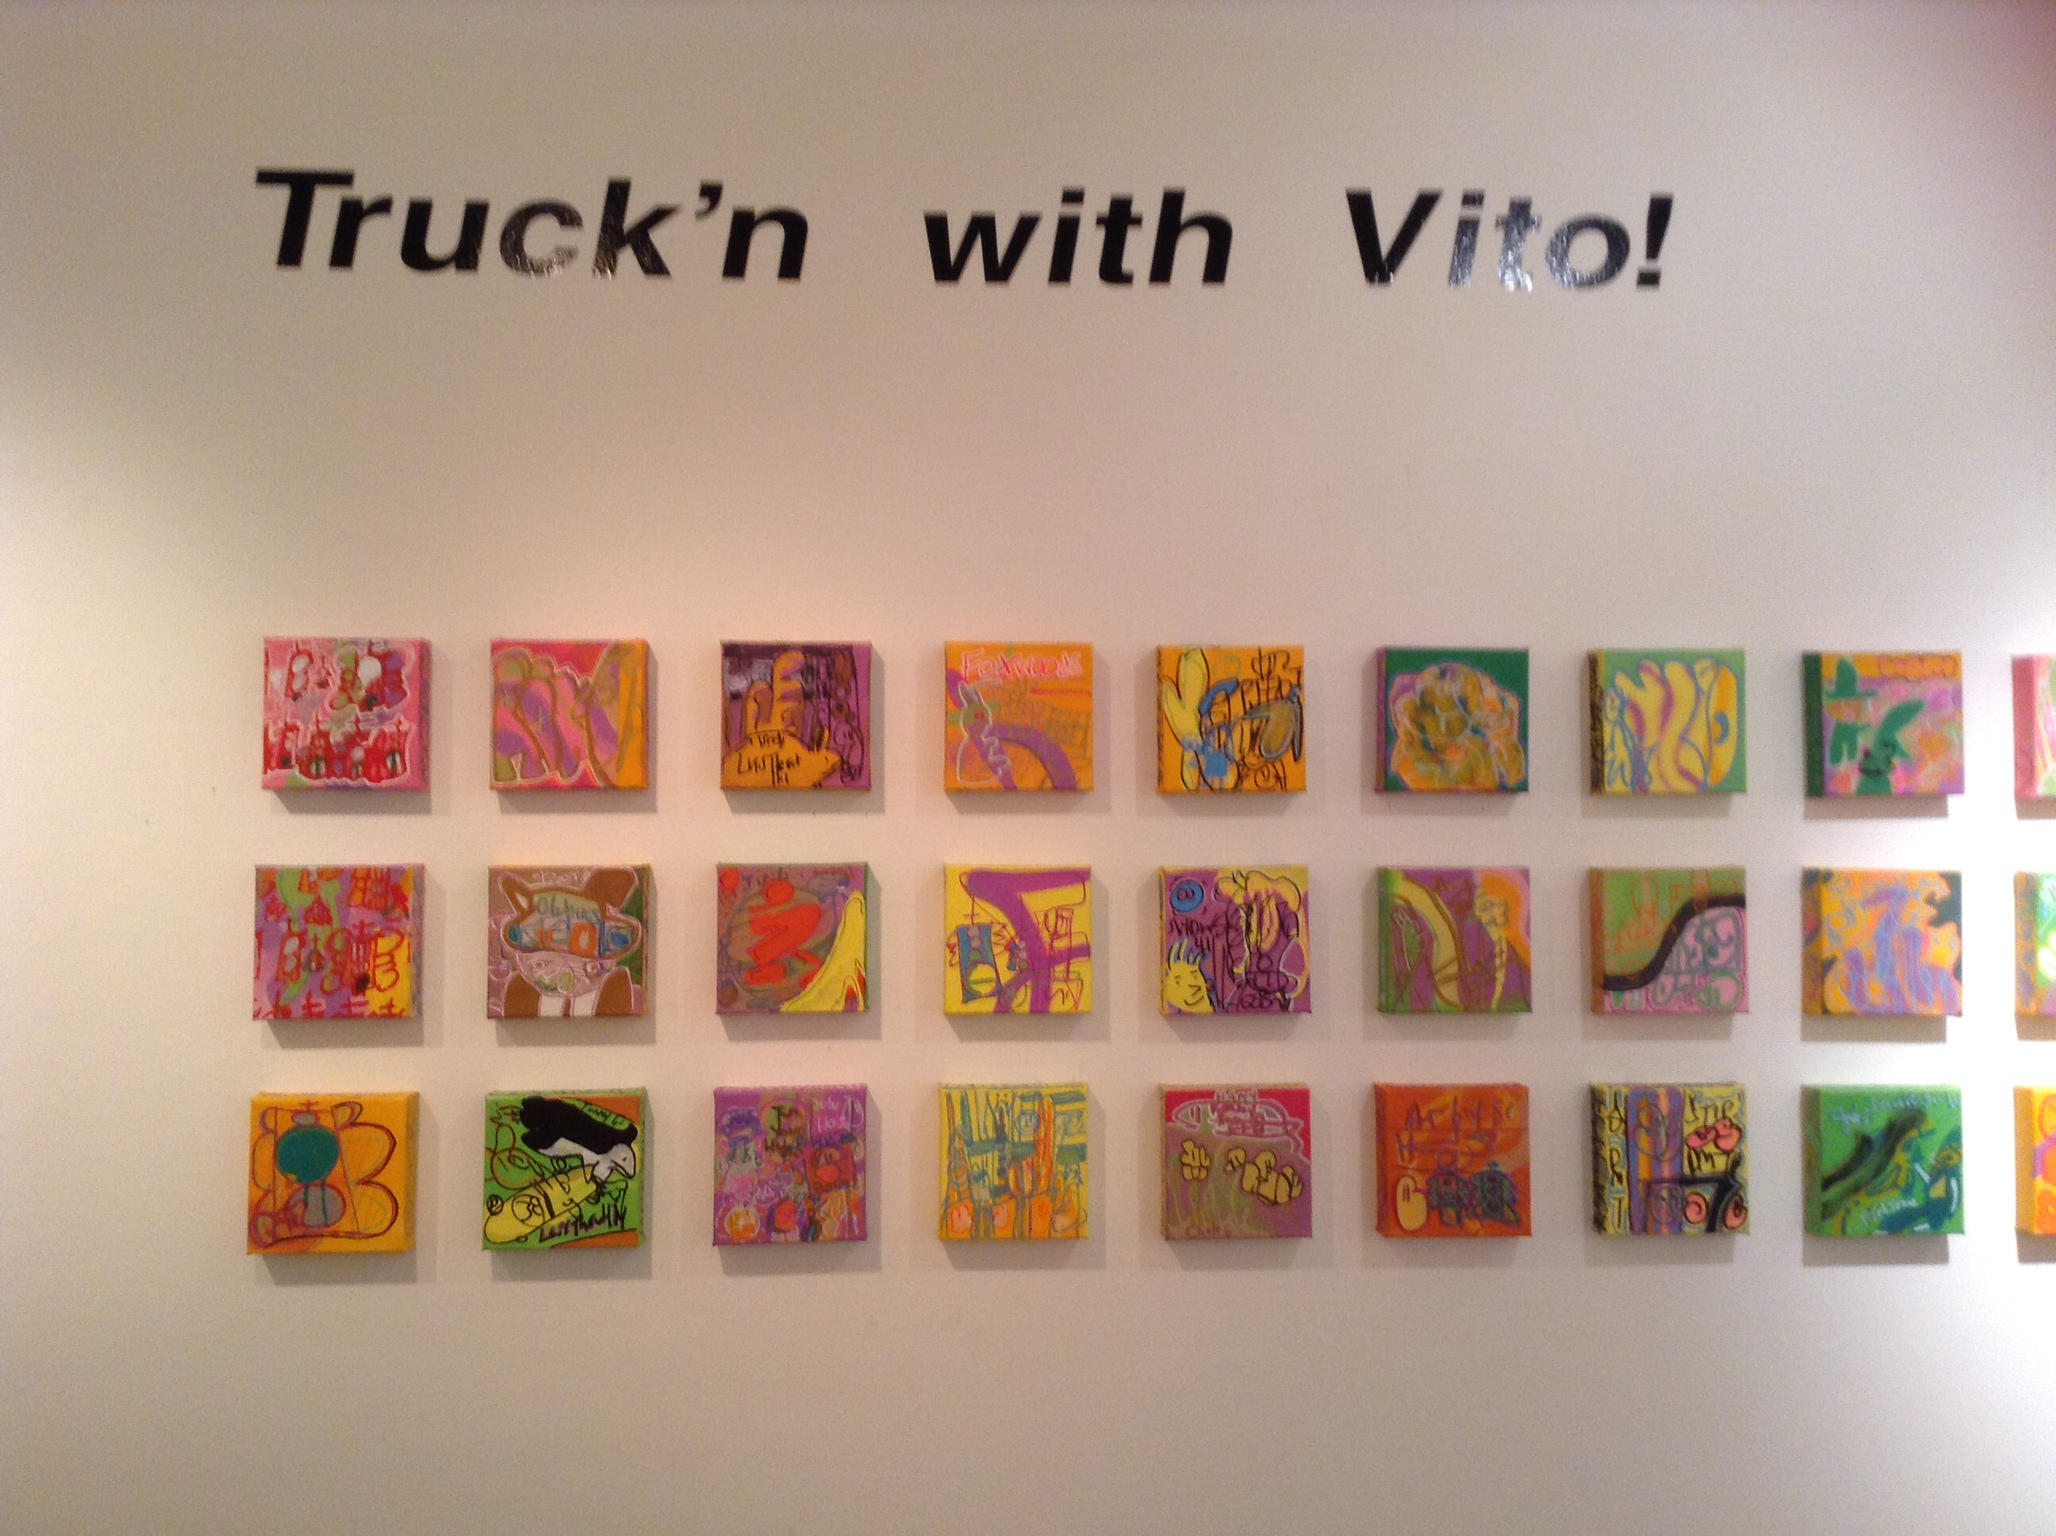 Truck'N With Vito! A Cultural Awareness Campaign